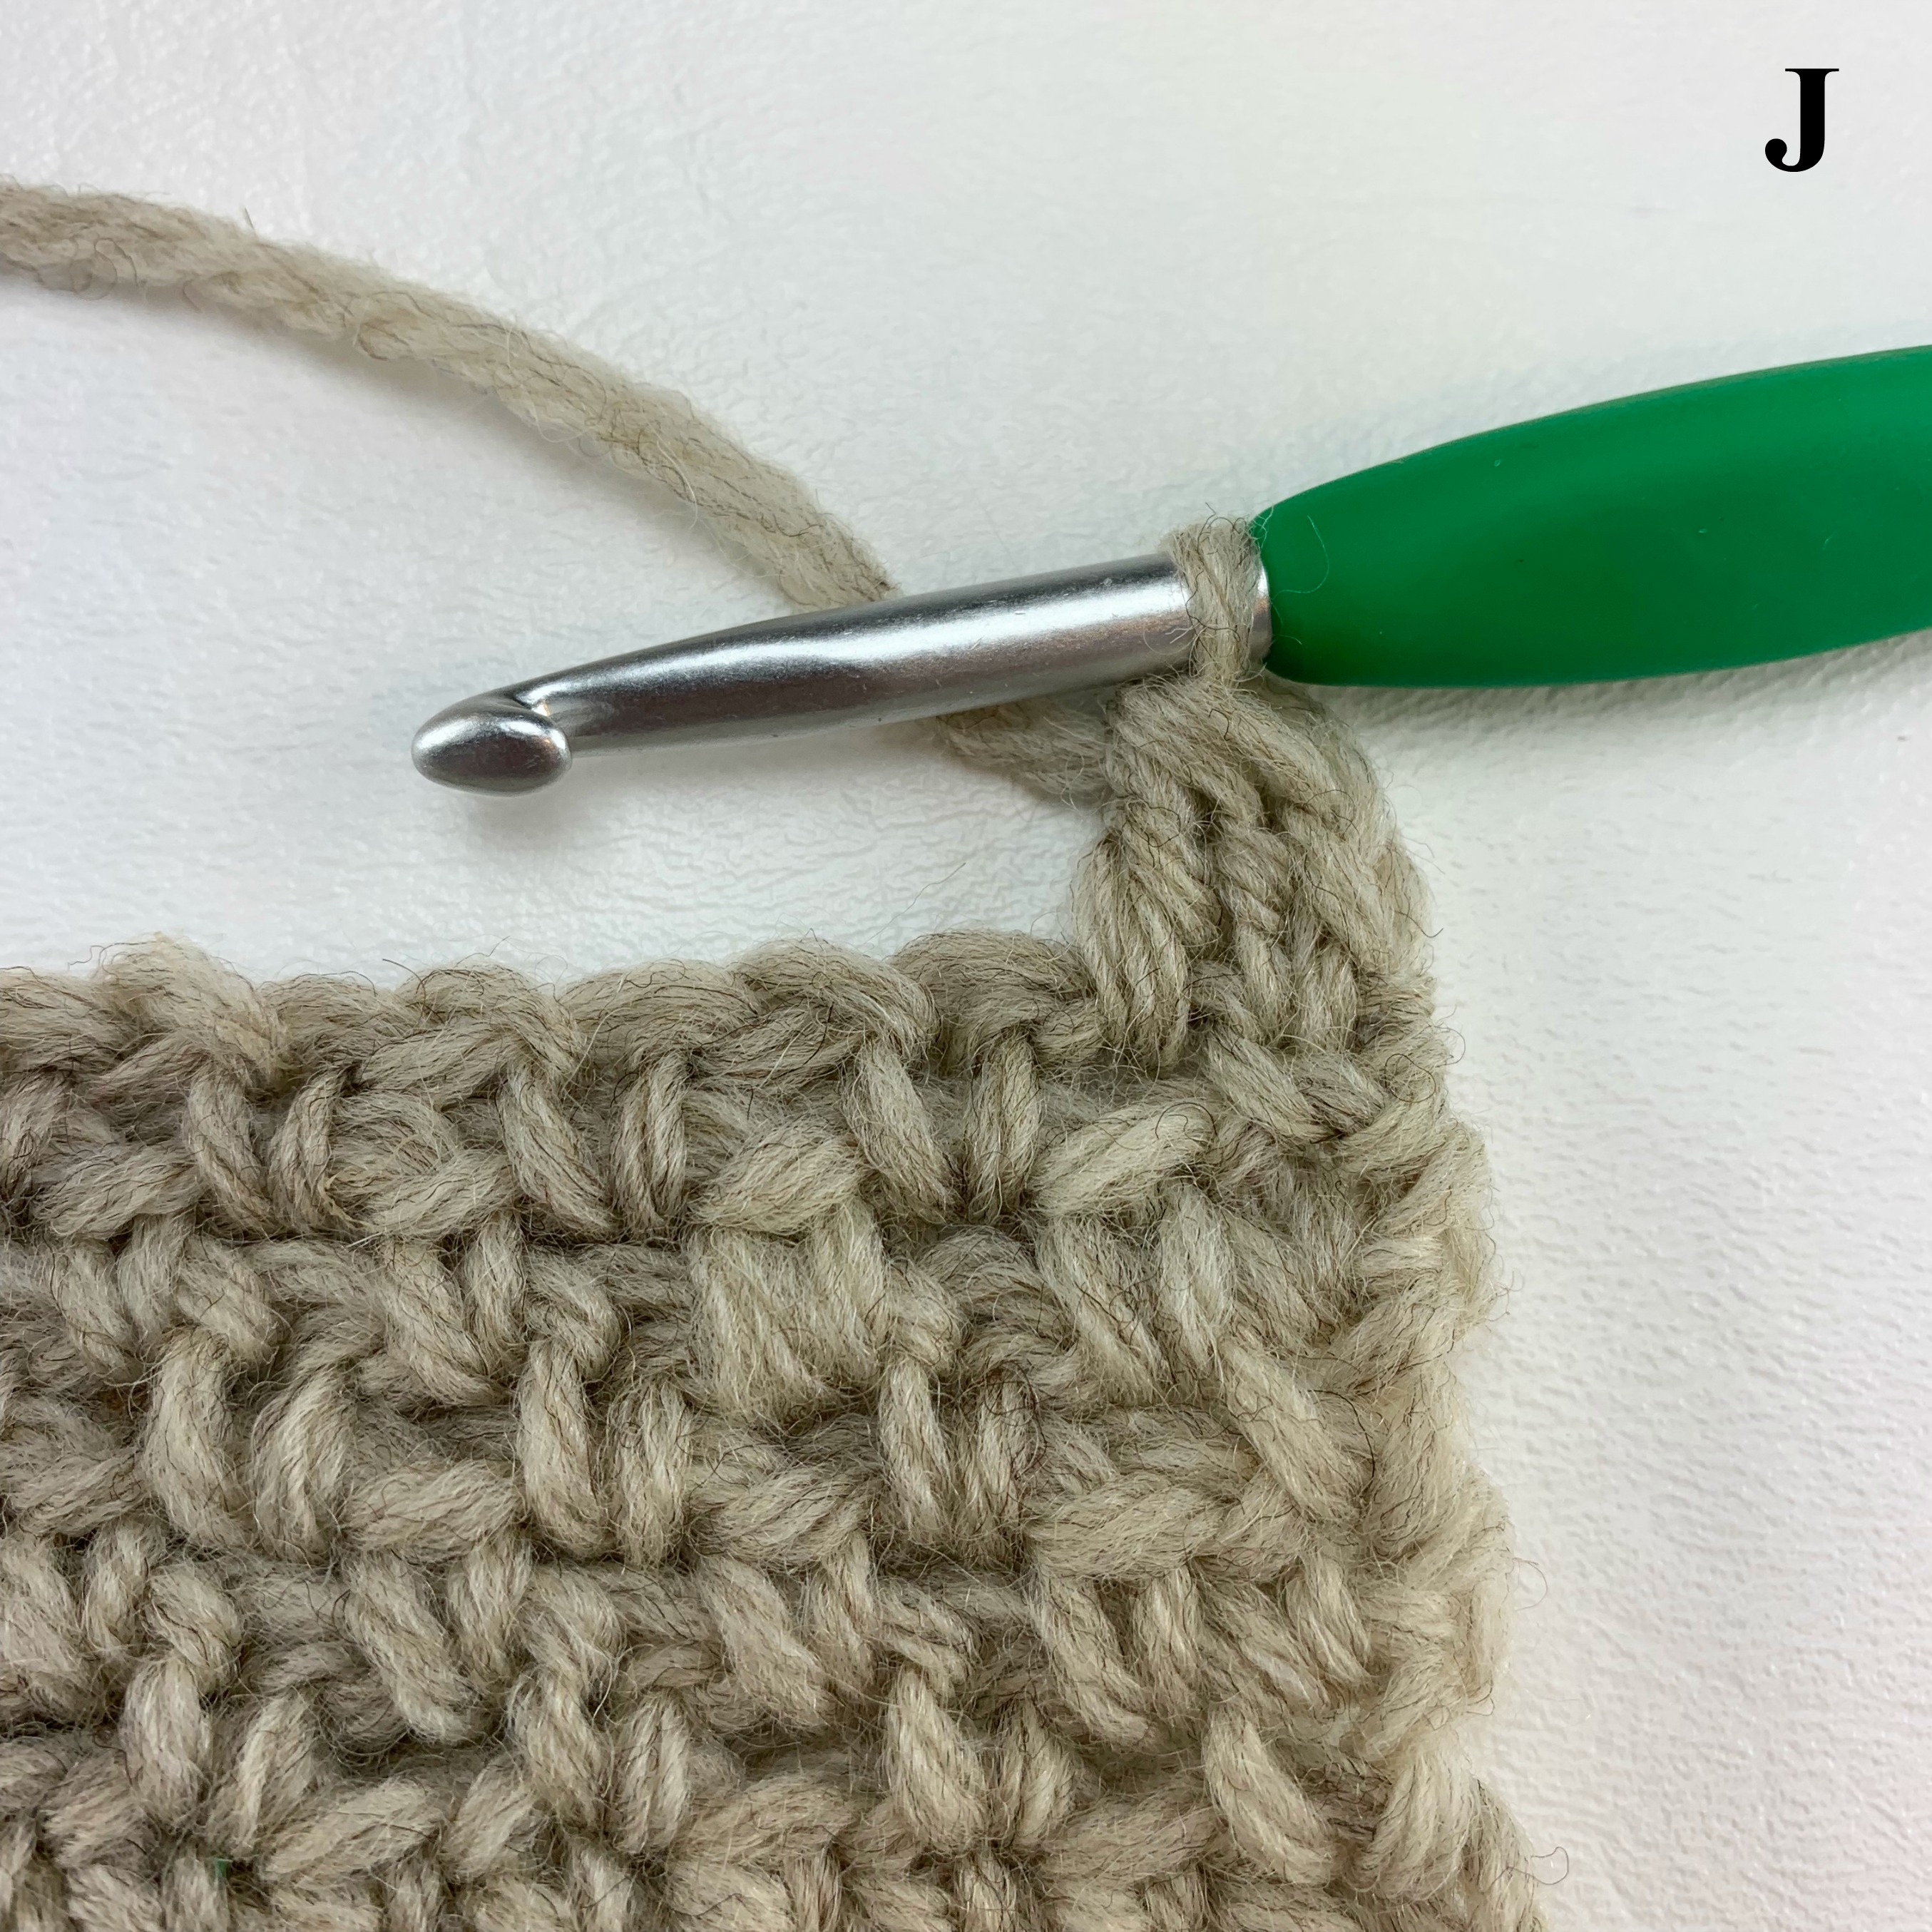 Learn to Crochet the Alternate Double Crochet Decrease, also know as a chainless double crochet - tutorial by A Crocheted Simplicity #crochetstitchtutorial #chainlessstitch #crochetstitchdecrease #alternatedoublecrochet